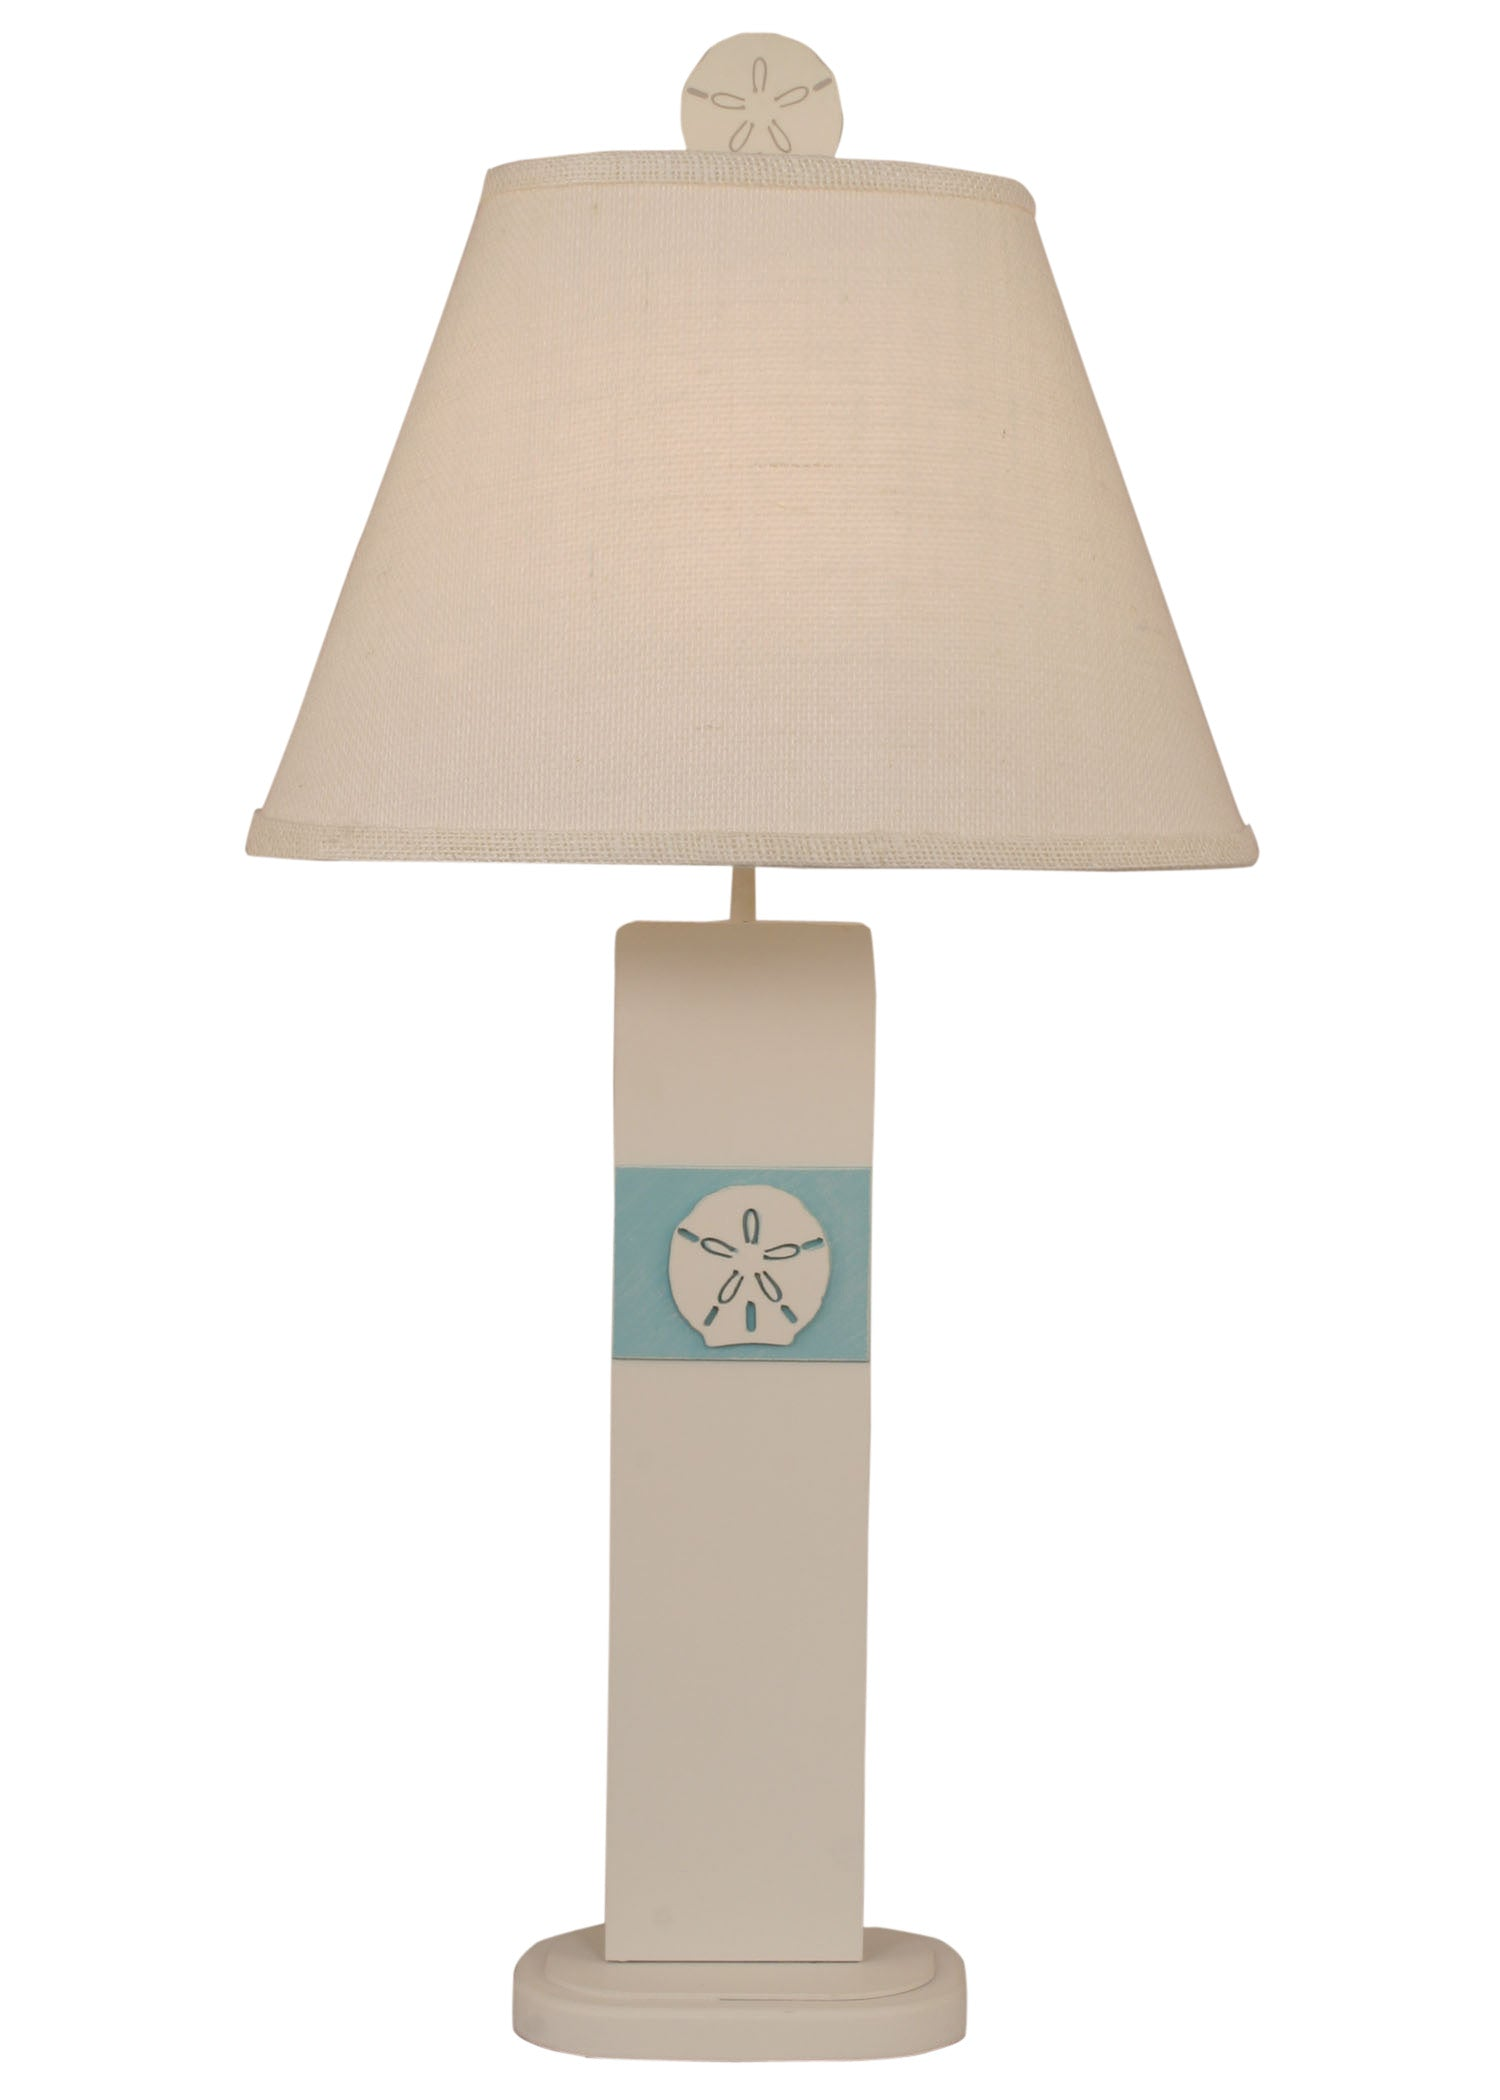 Weathered Nude/Turquoise Sea Sand Dollar Panel Table Lamp - Coast Lamp Shop